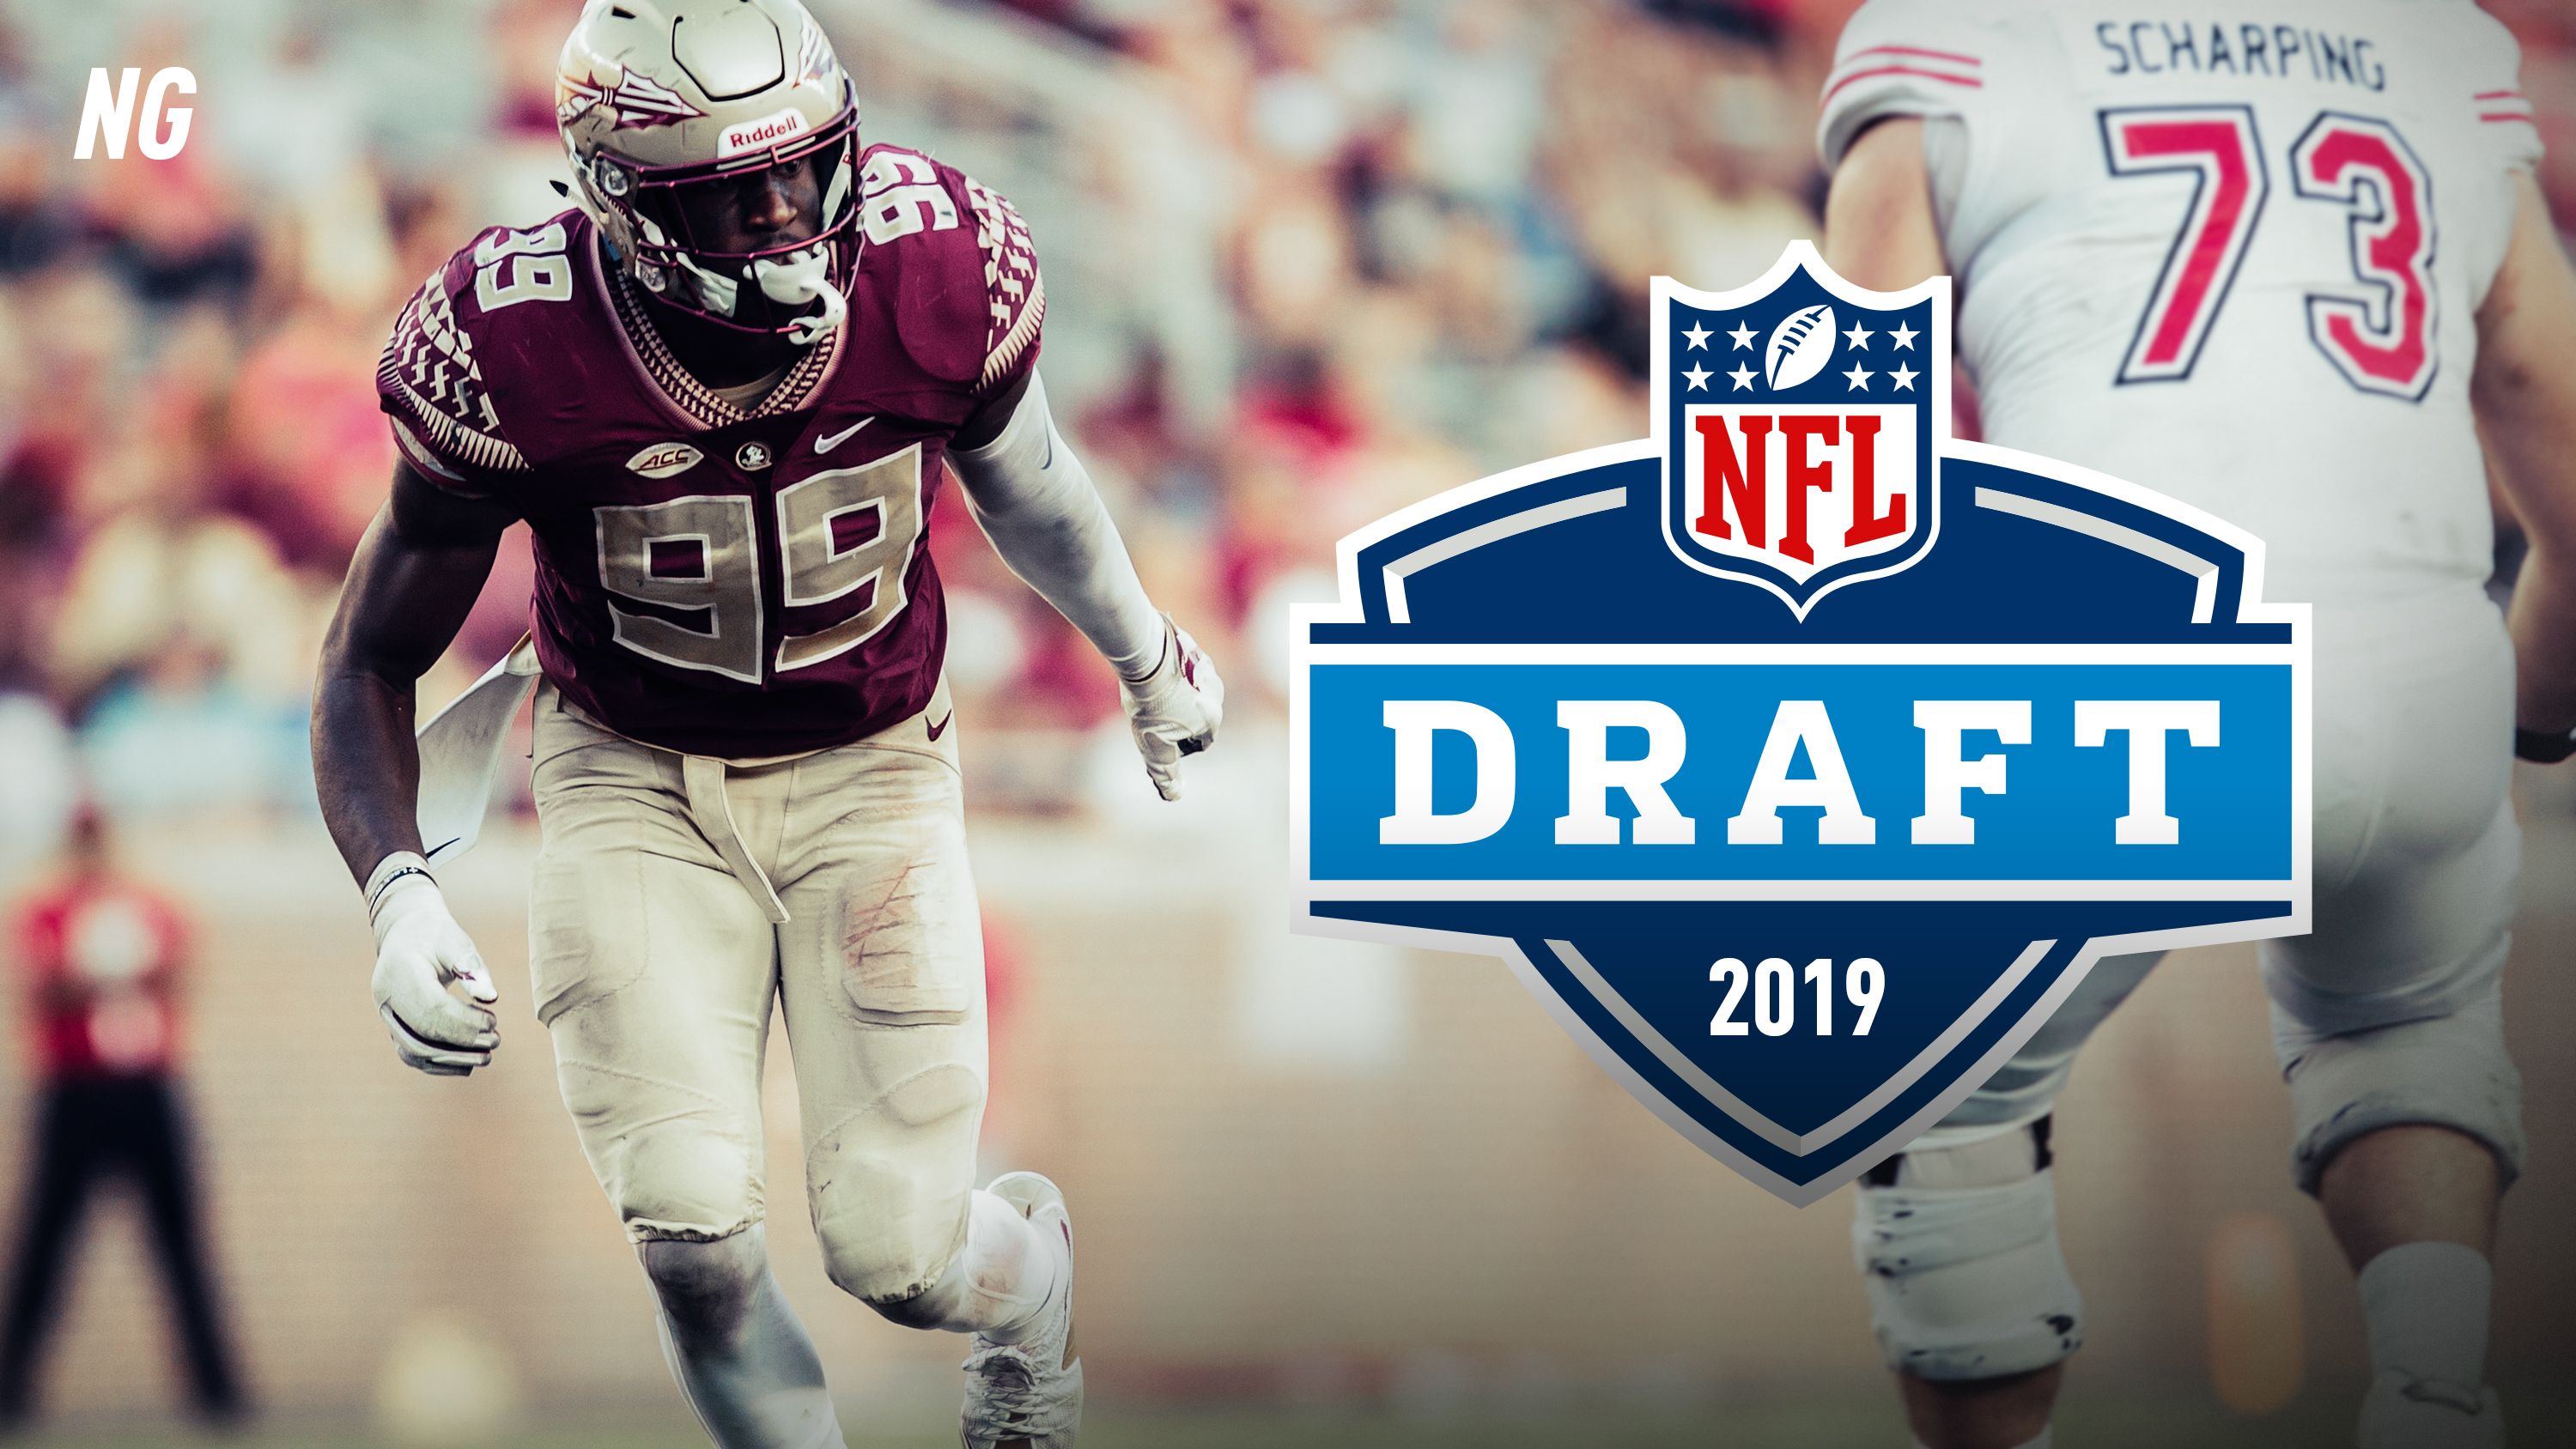 e3f43233 Former Florida State and All-ACC pass rusher Brian Burns is officially an  NFL player as he was selected overall by the Carolina Panthers with the  16th ...